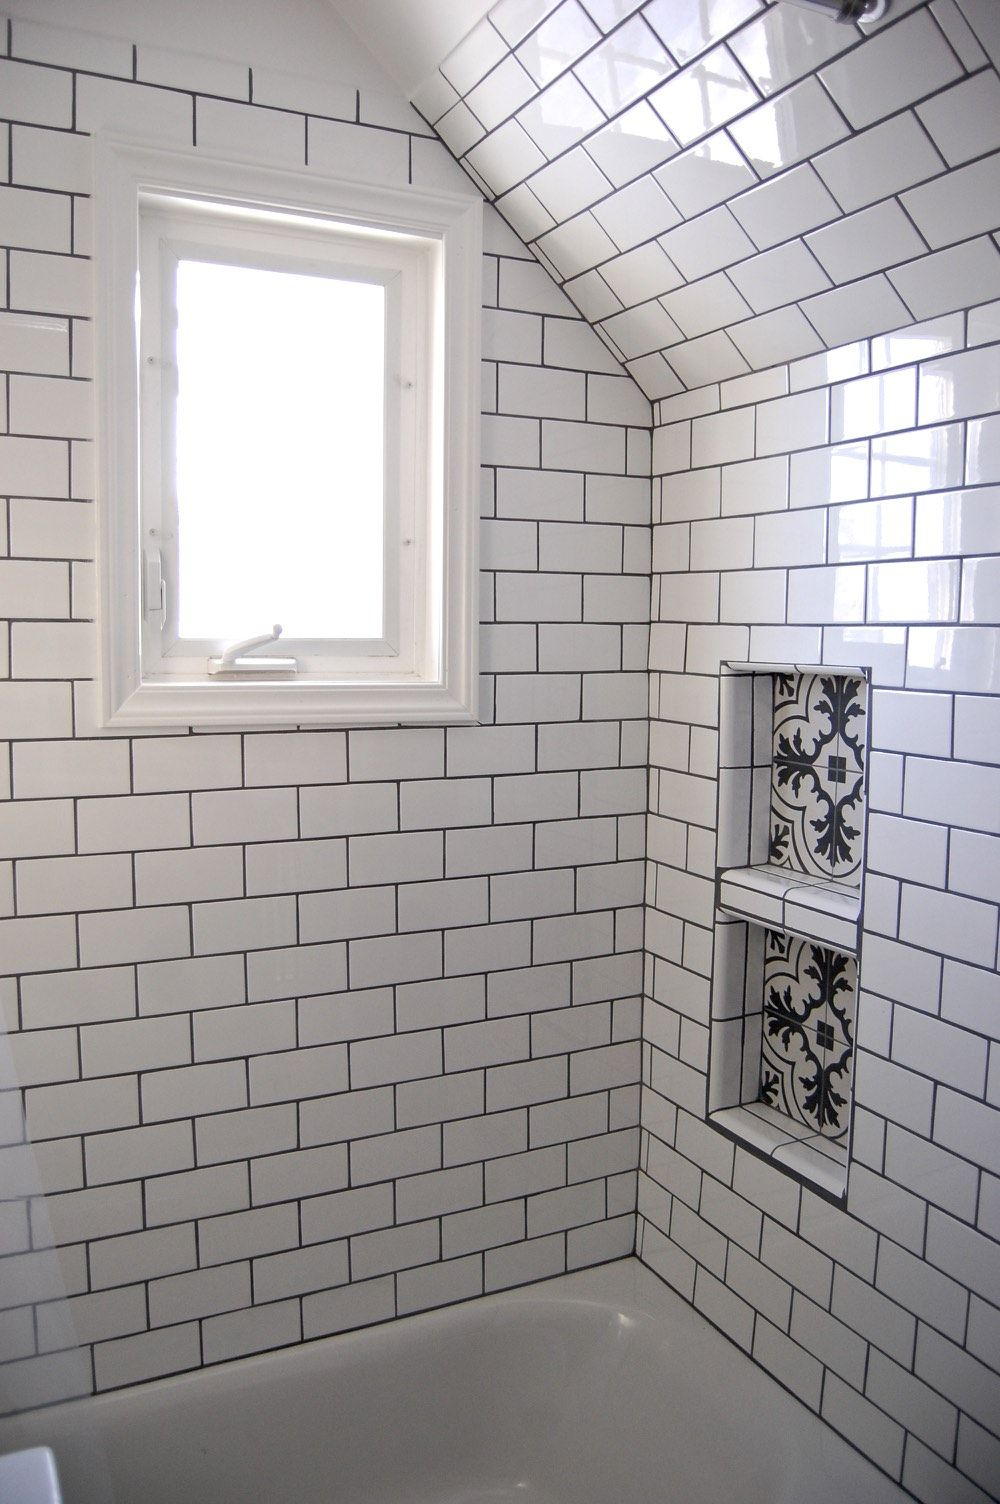 White Subway Tile Shower Tub With Shower Niche And Window White Subway Tile Shower Bathrooms Remodel Bathroom Remodel Shower